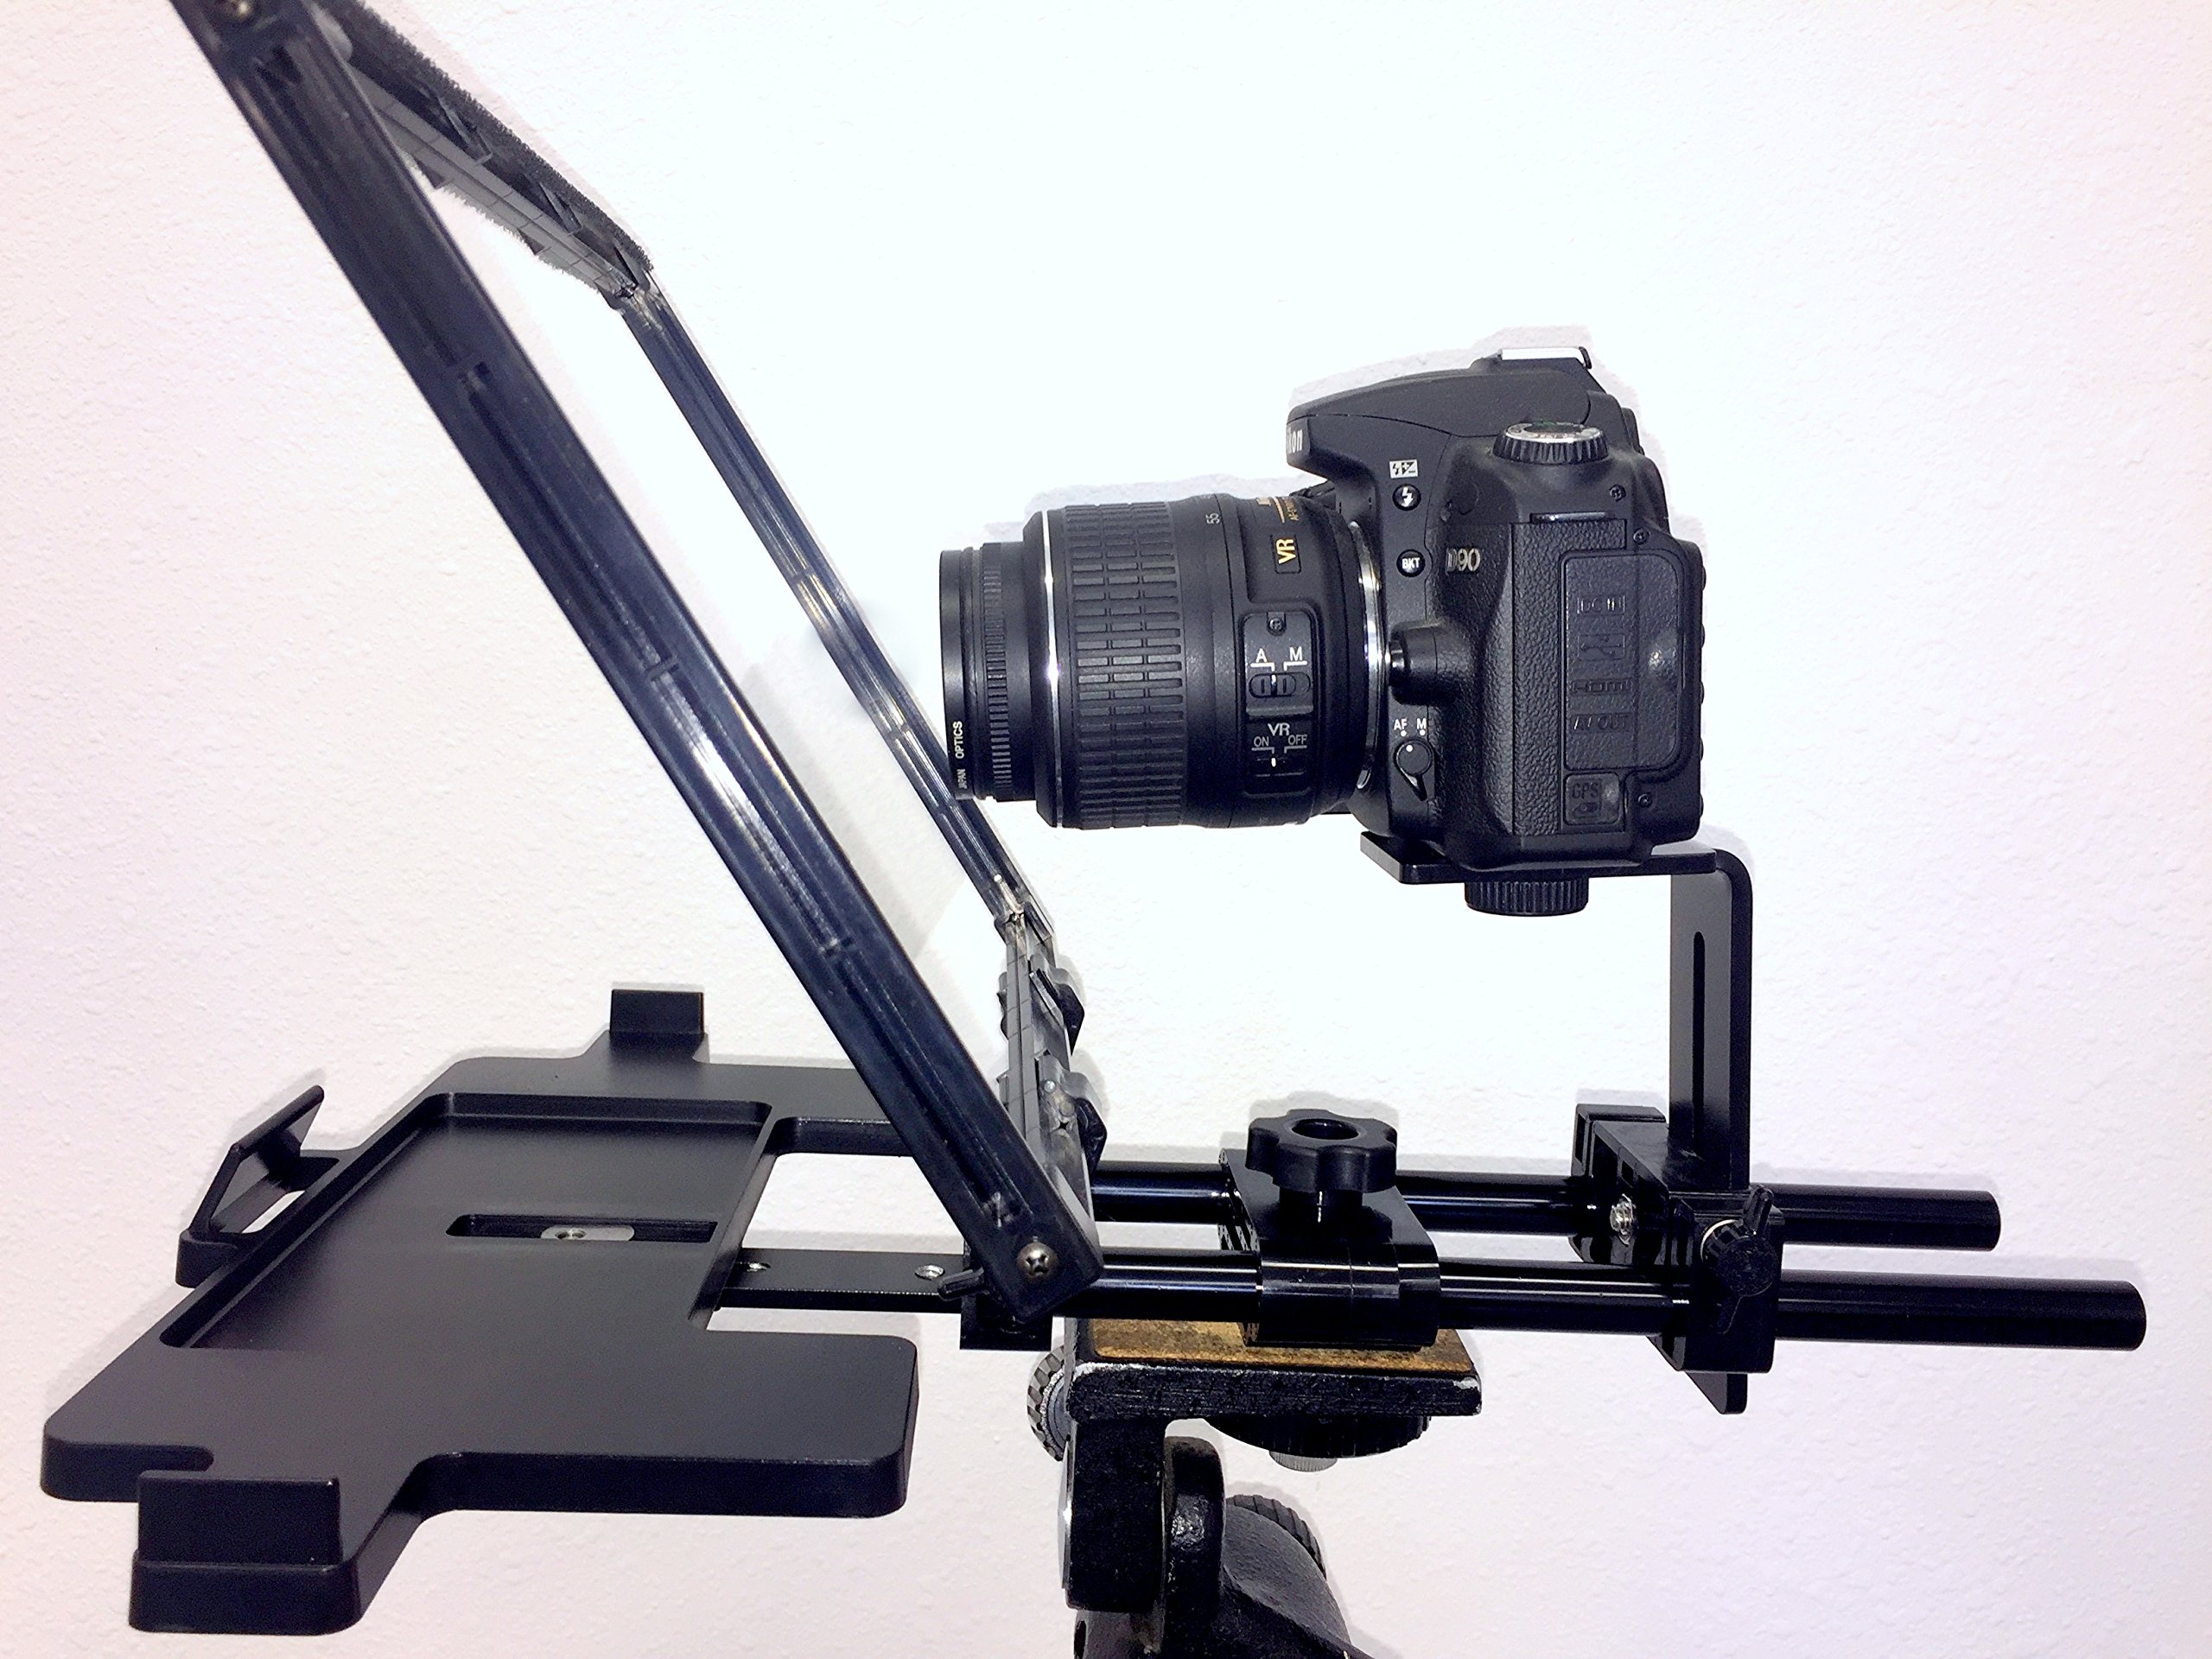 Teleprompter Simple Professional Portable use any tablet, iPad or phone. 70/30 Beam Splitter Glass. by Caddie Buddy